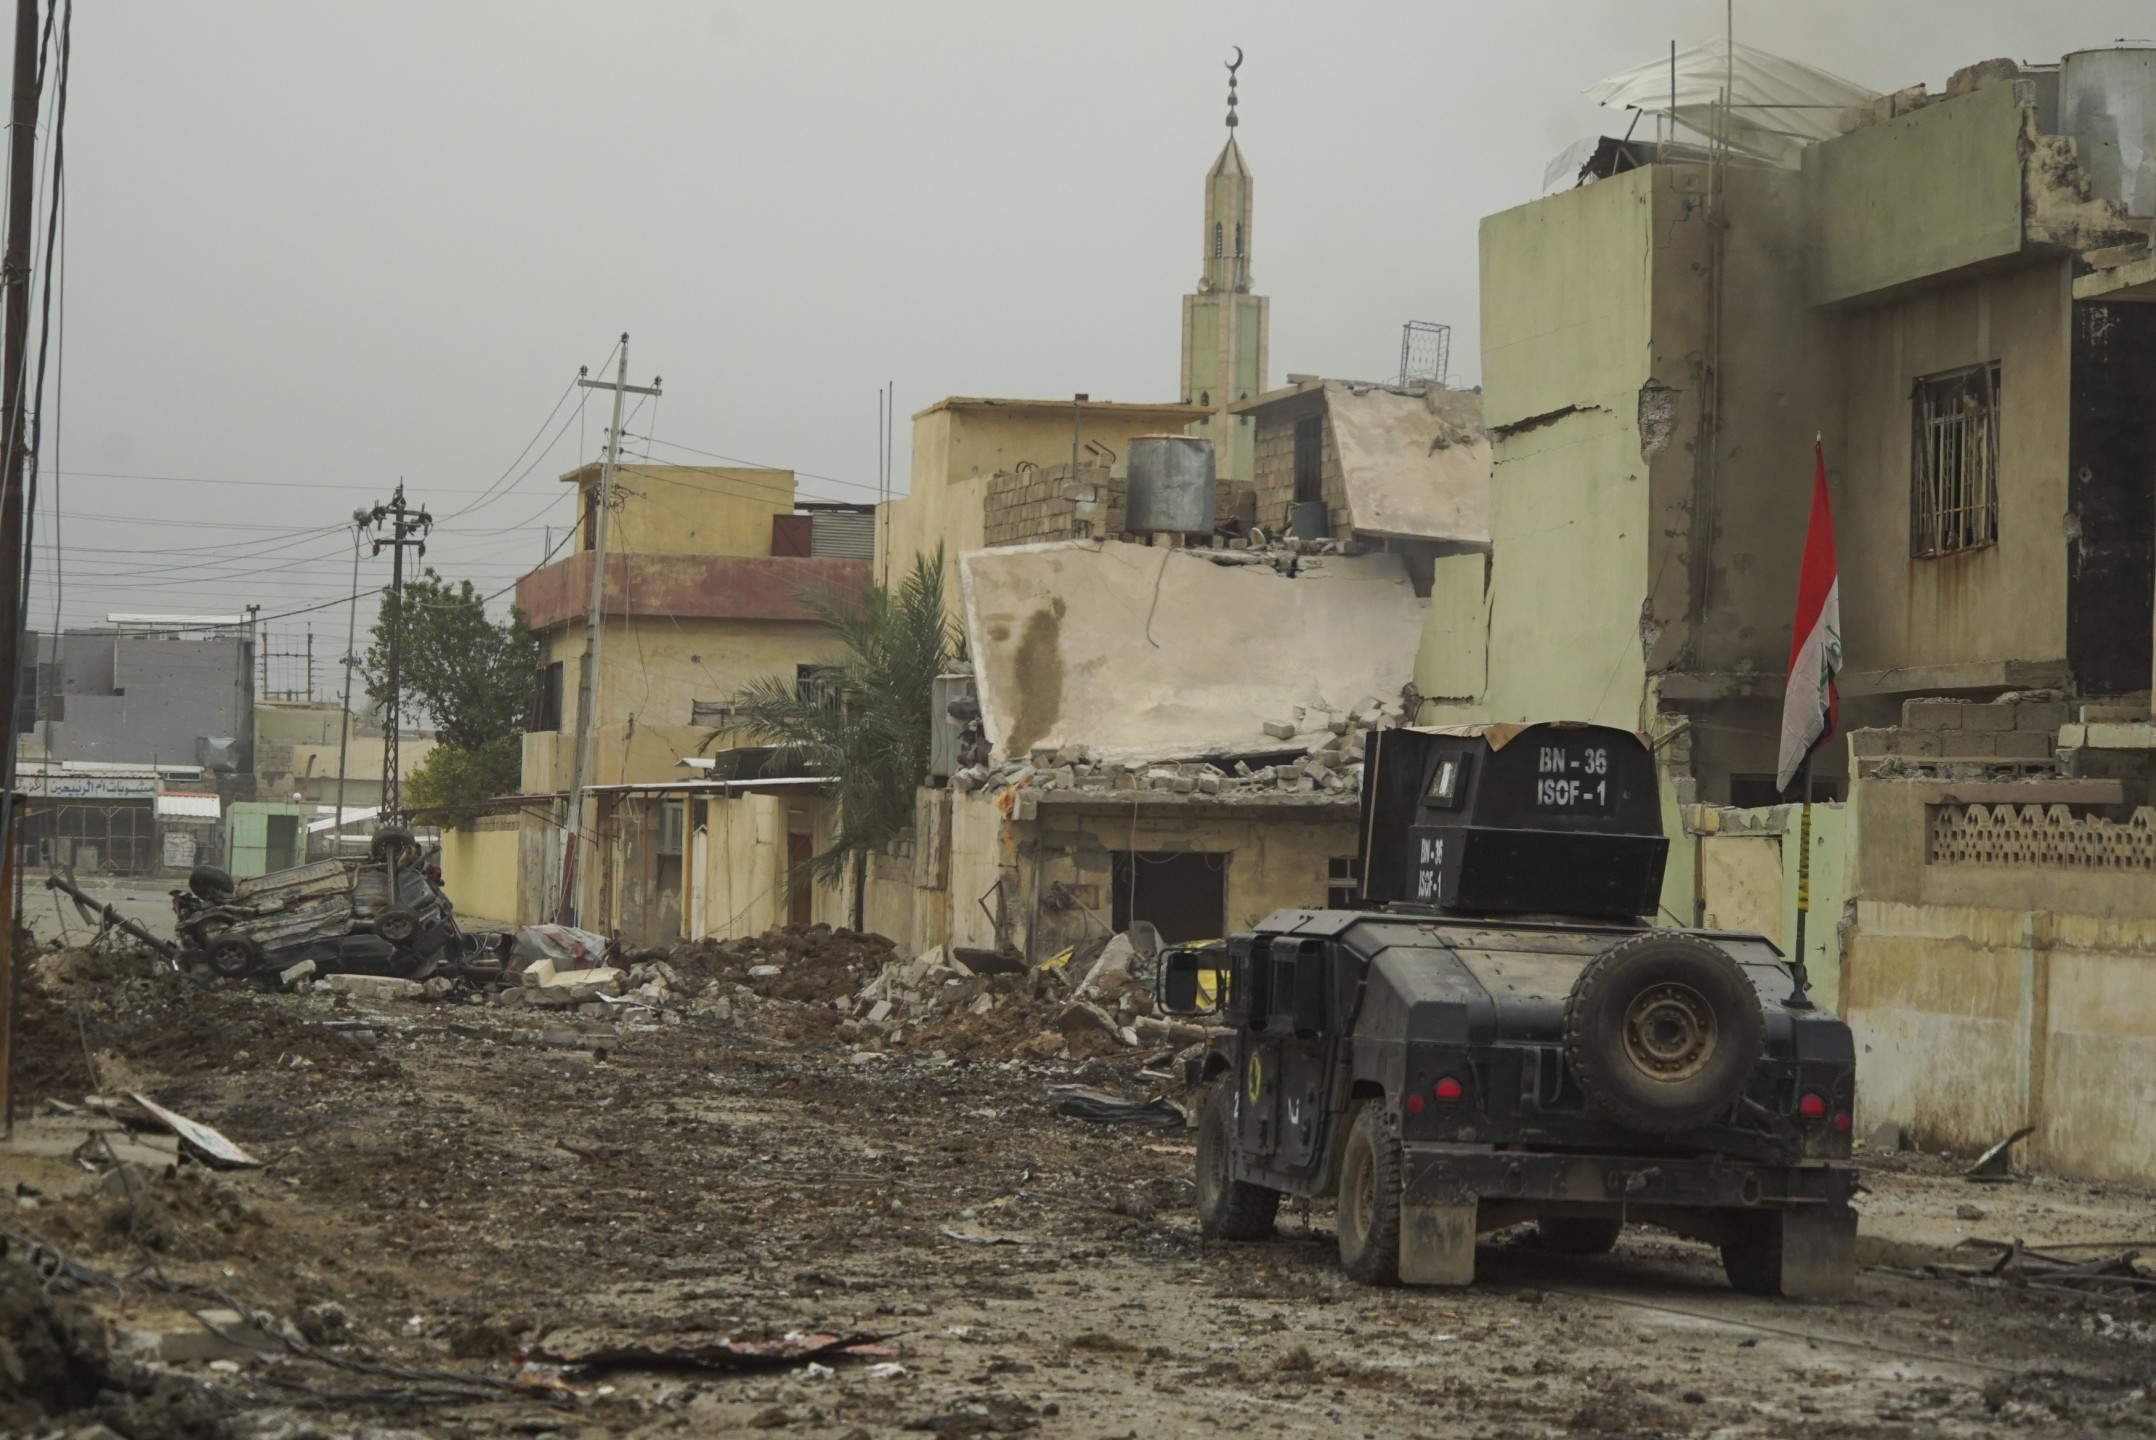 isof_apc_on_the_street_of_mosul_northern_iraq_western_asia._16_november_2016.jpg